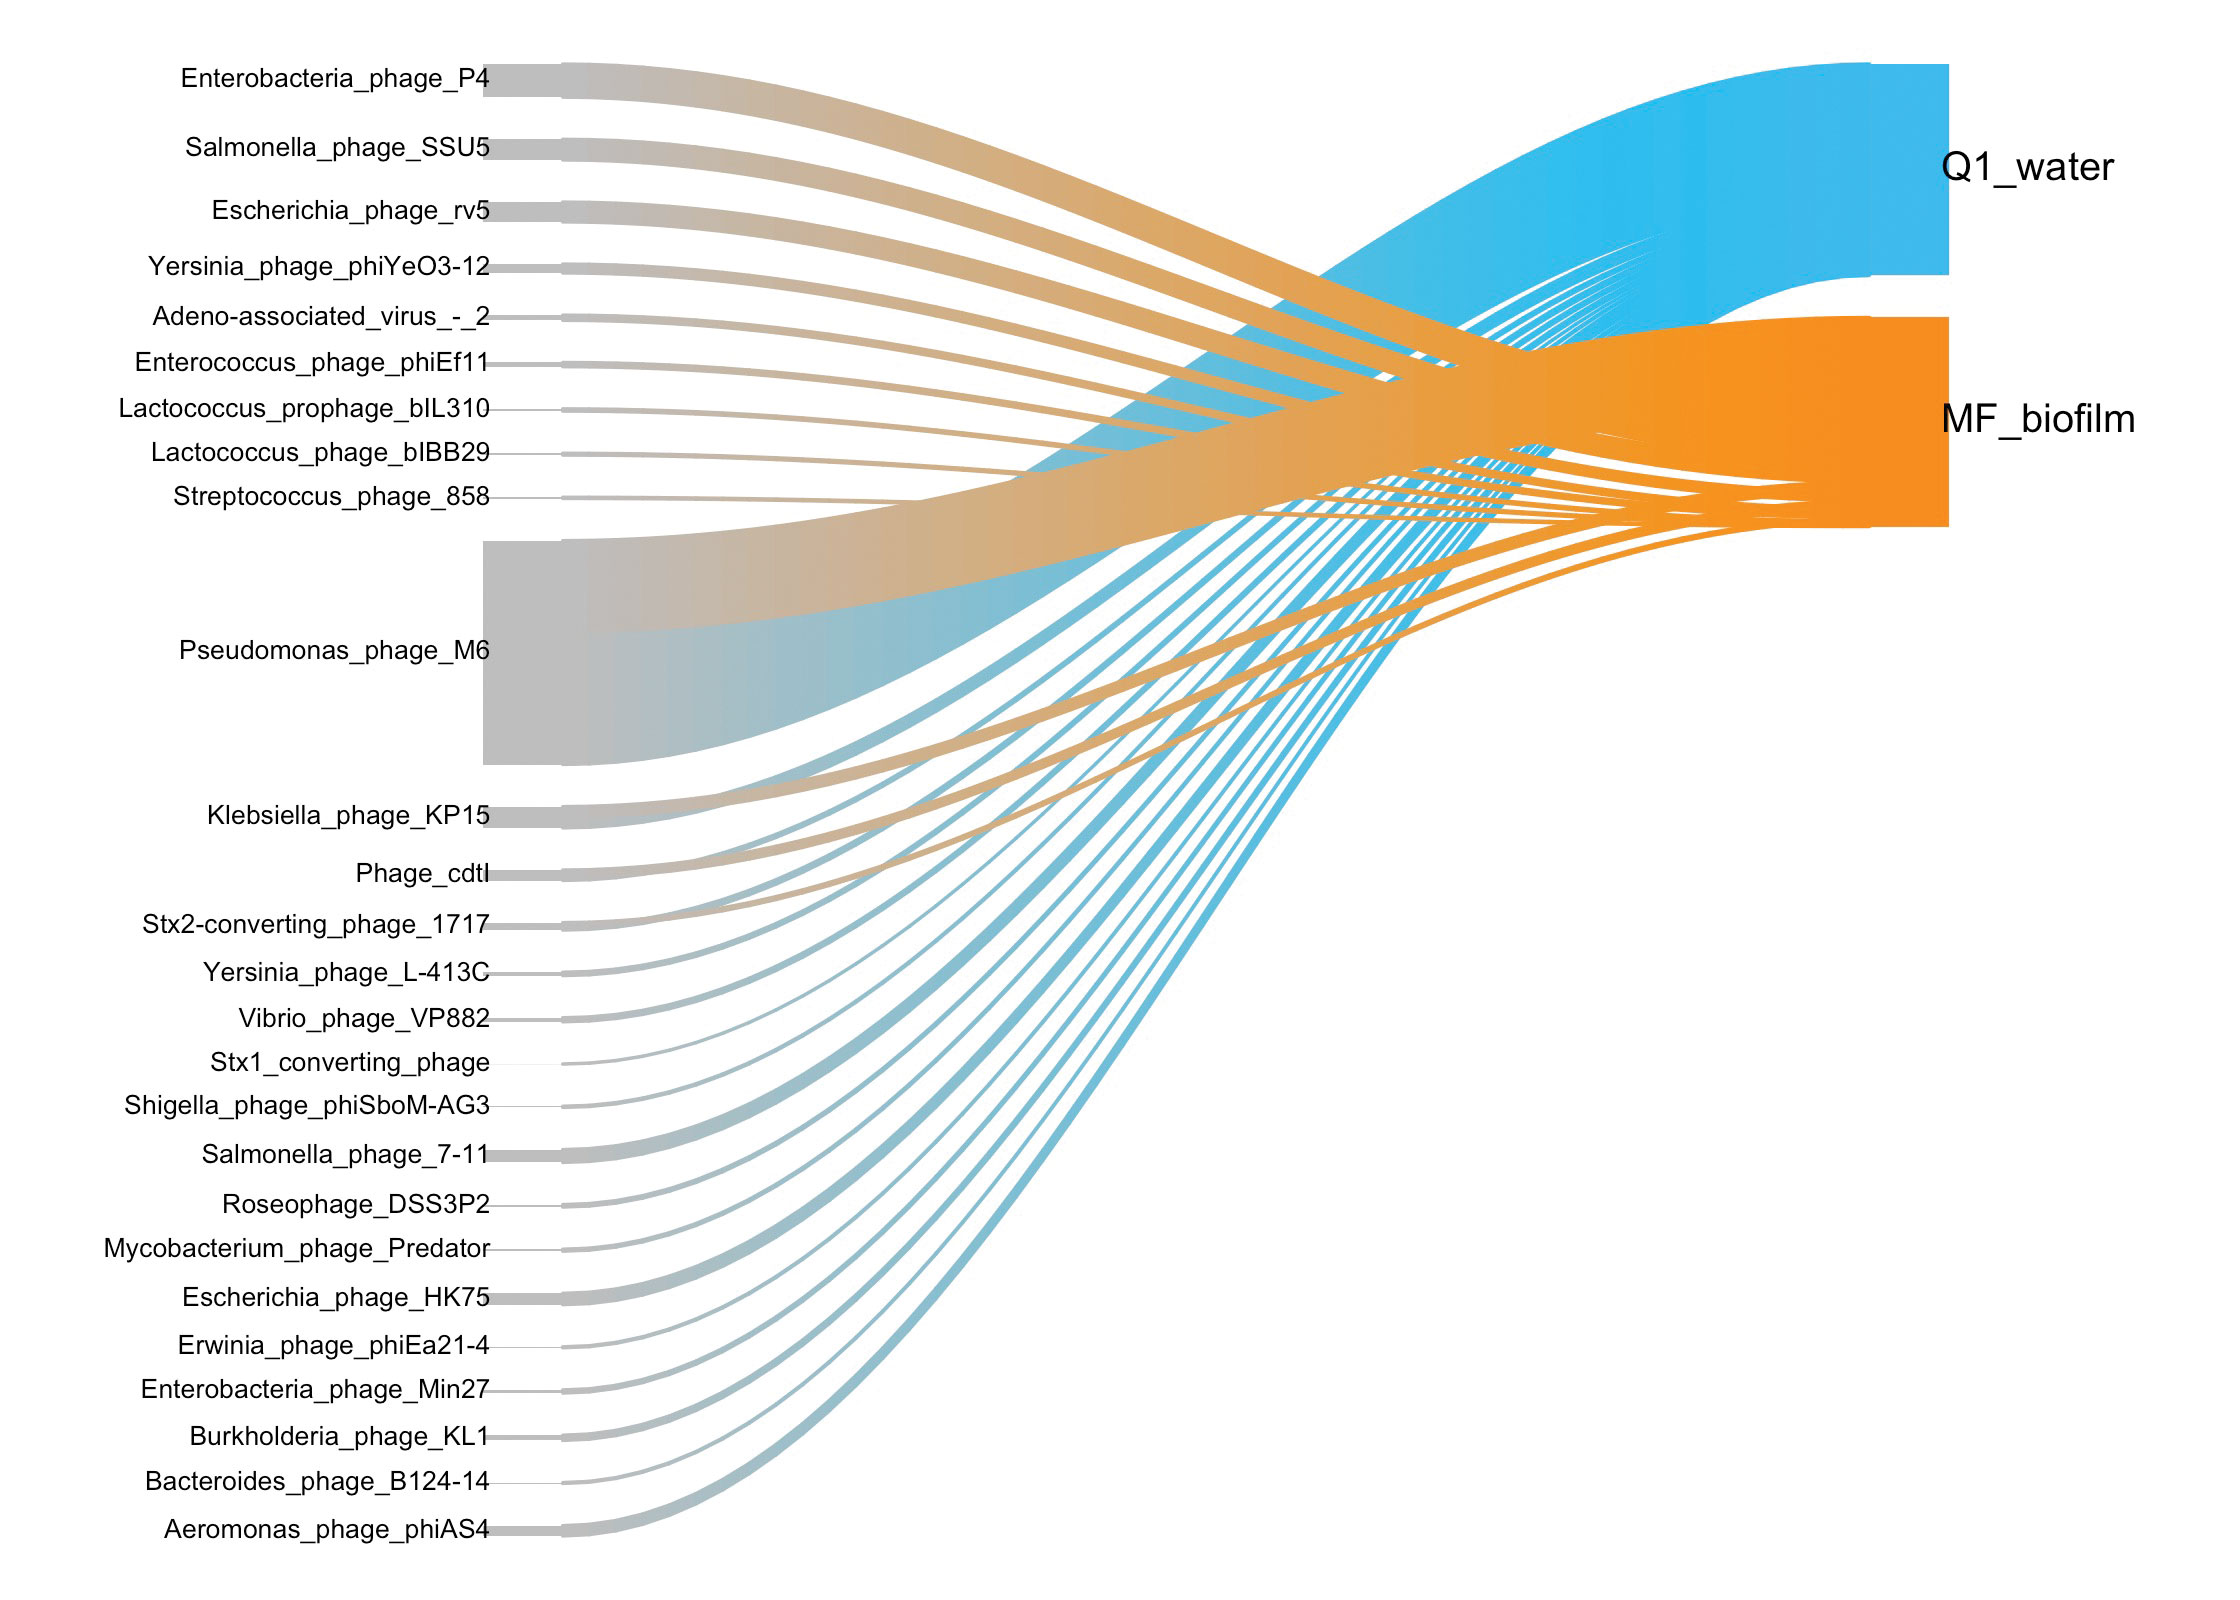 Cosmosid Brings Biology Into The 21st Century Hydroelectric Power Plant Sankey Diagram Demonstrating Differential Presence Of Bacteriophages In Mf Biofilm And Influent Q1 Water Image Provided By